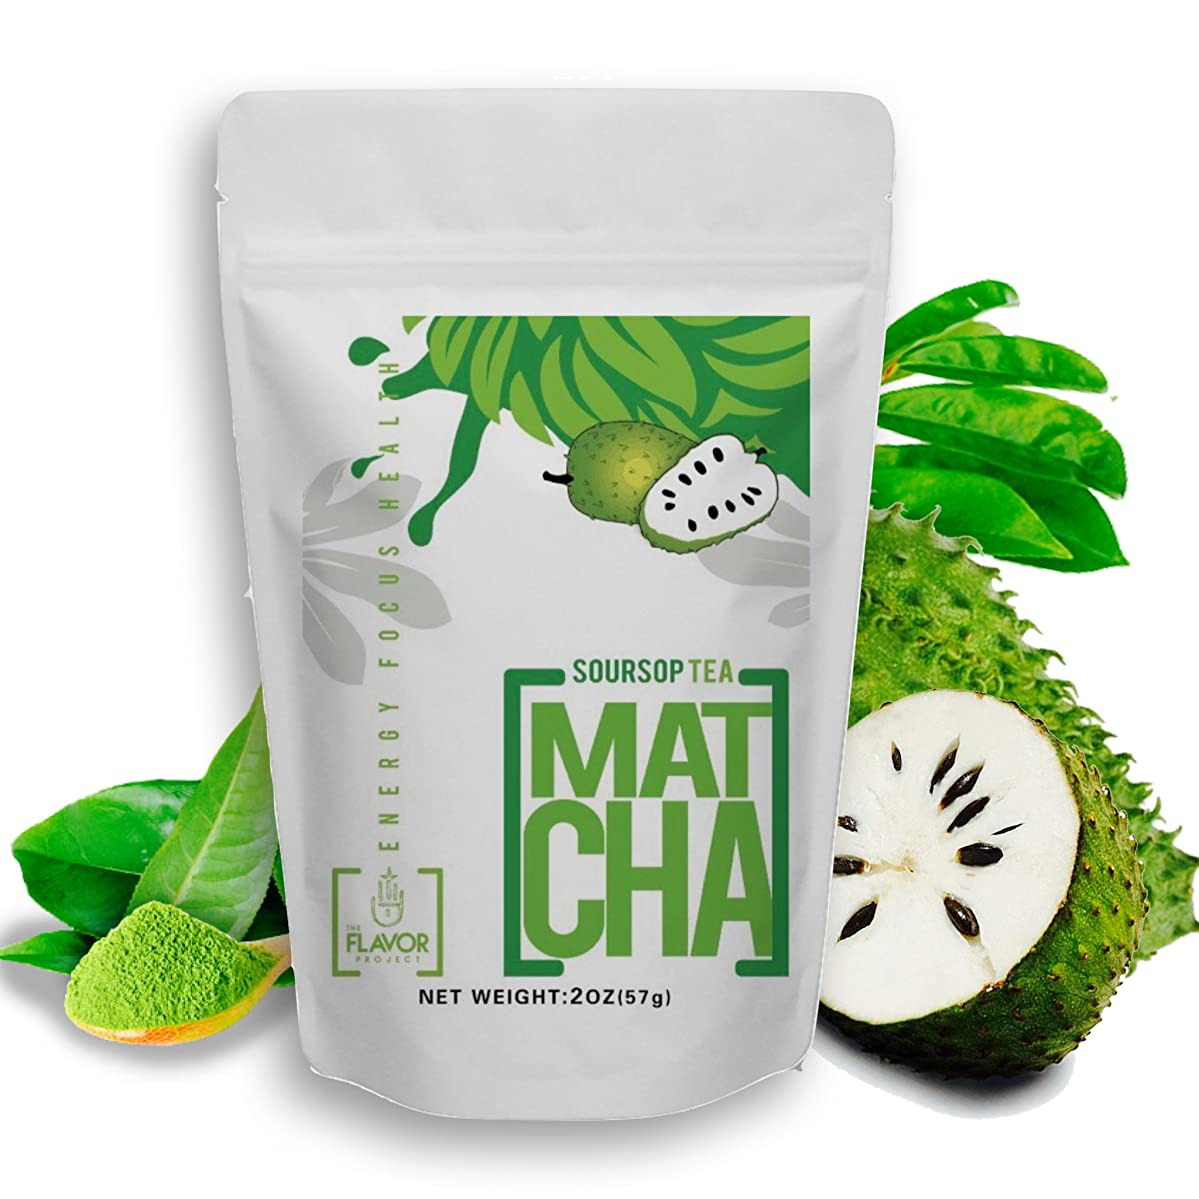 Organic Soursop Tea Powder with Matcha for Ultimate Health and Wellness - 35 Servings